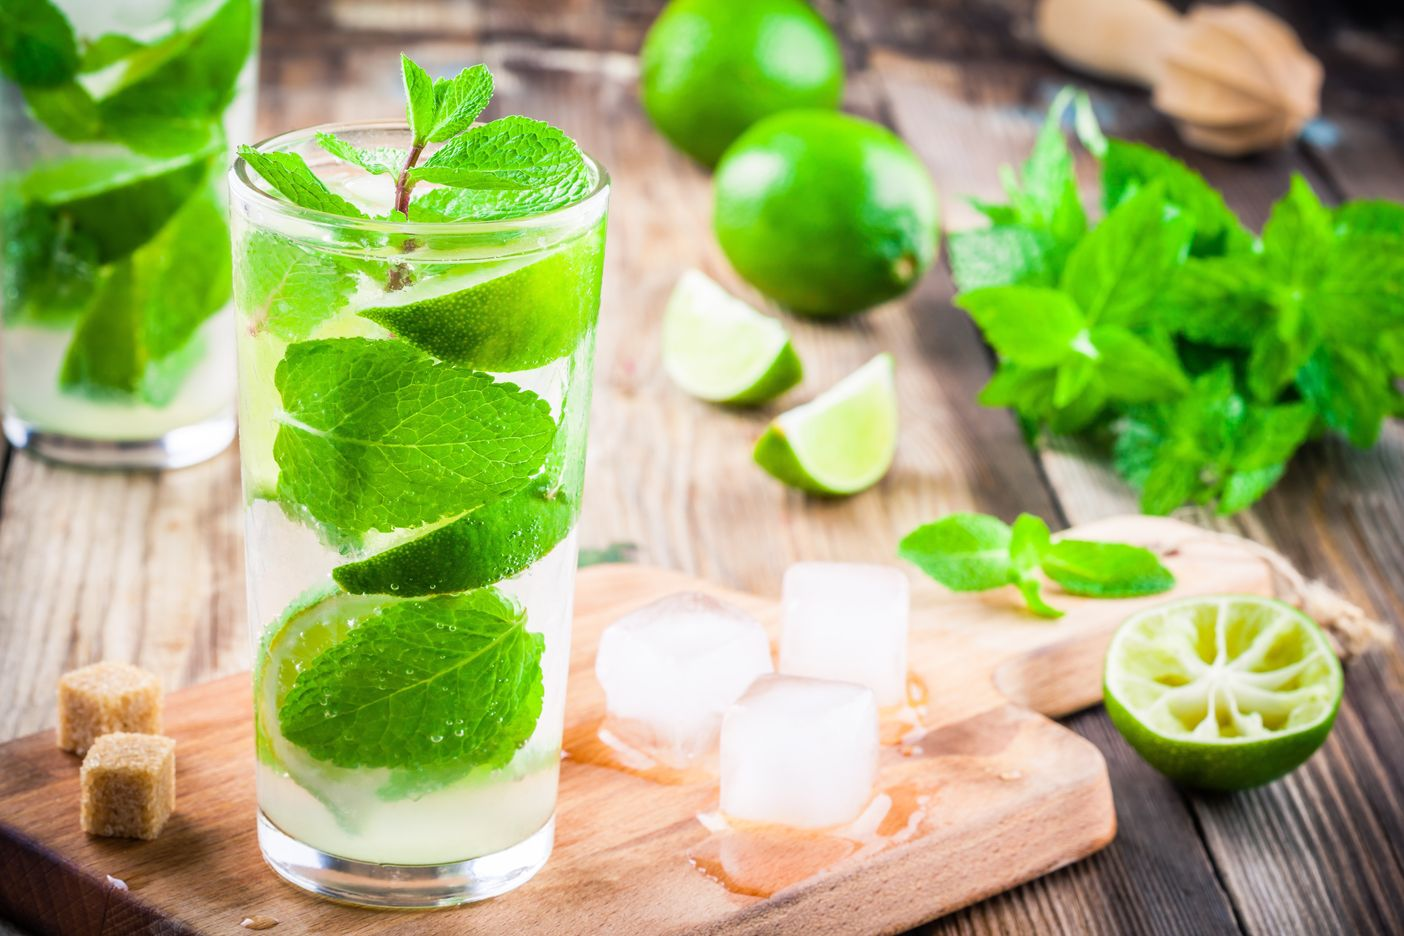 fresh-cocktails-with-lime-mint-and-ice-in-glass-PTUEGHV